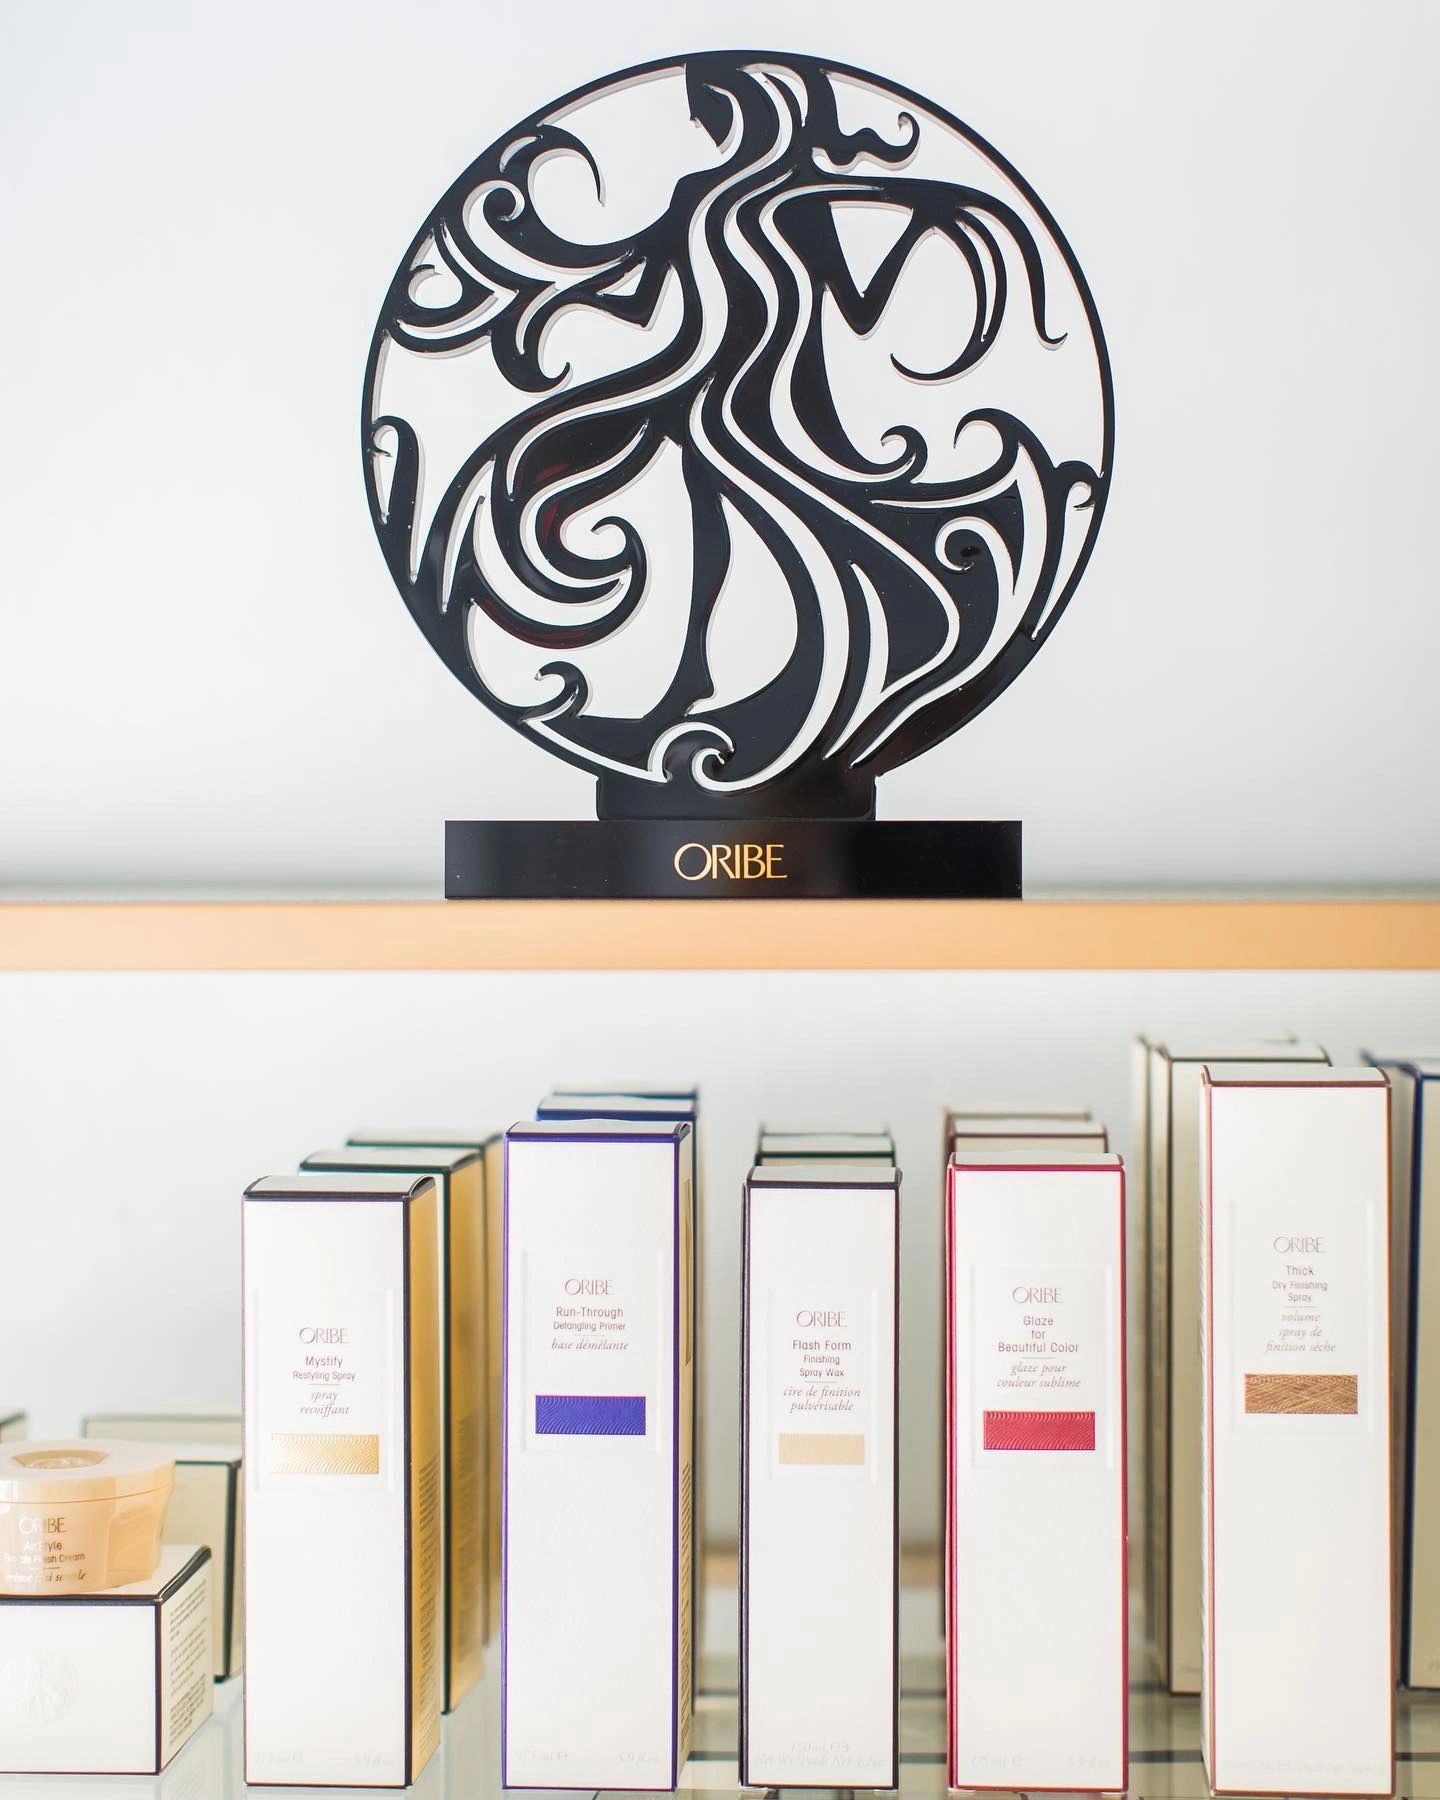 oribe logo on golden bookcase with salon products